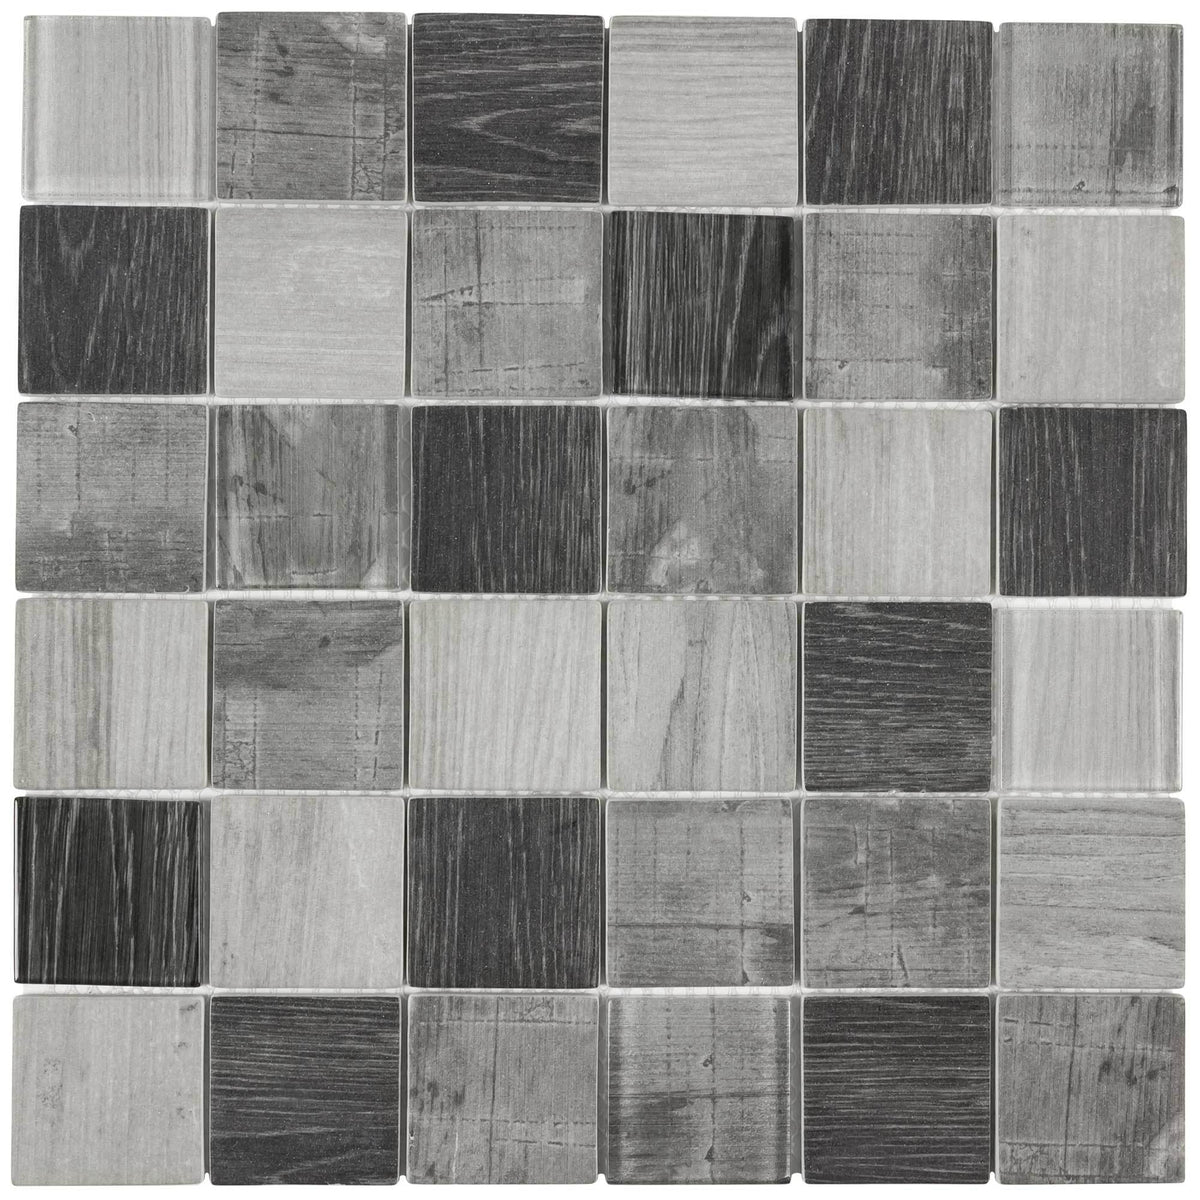 2x2 Squares Gray Wood Grain Glass Mosaic Tile Mto0336